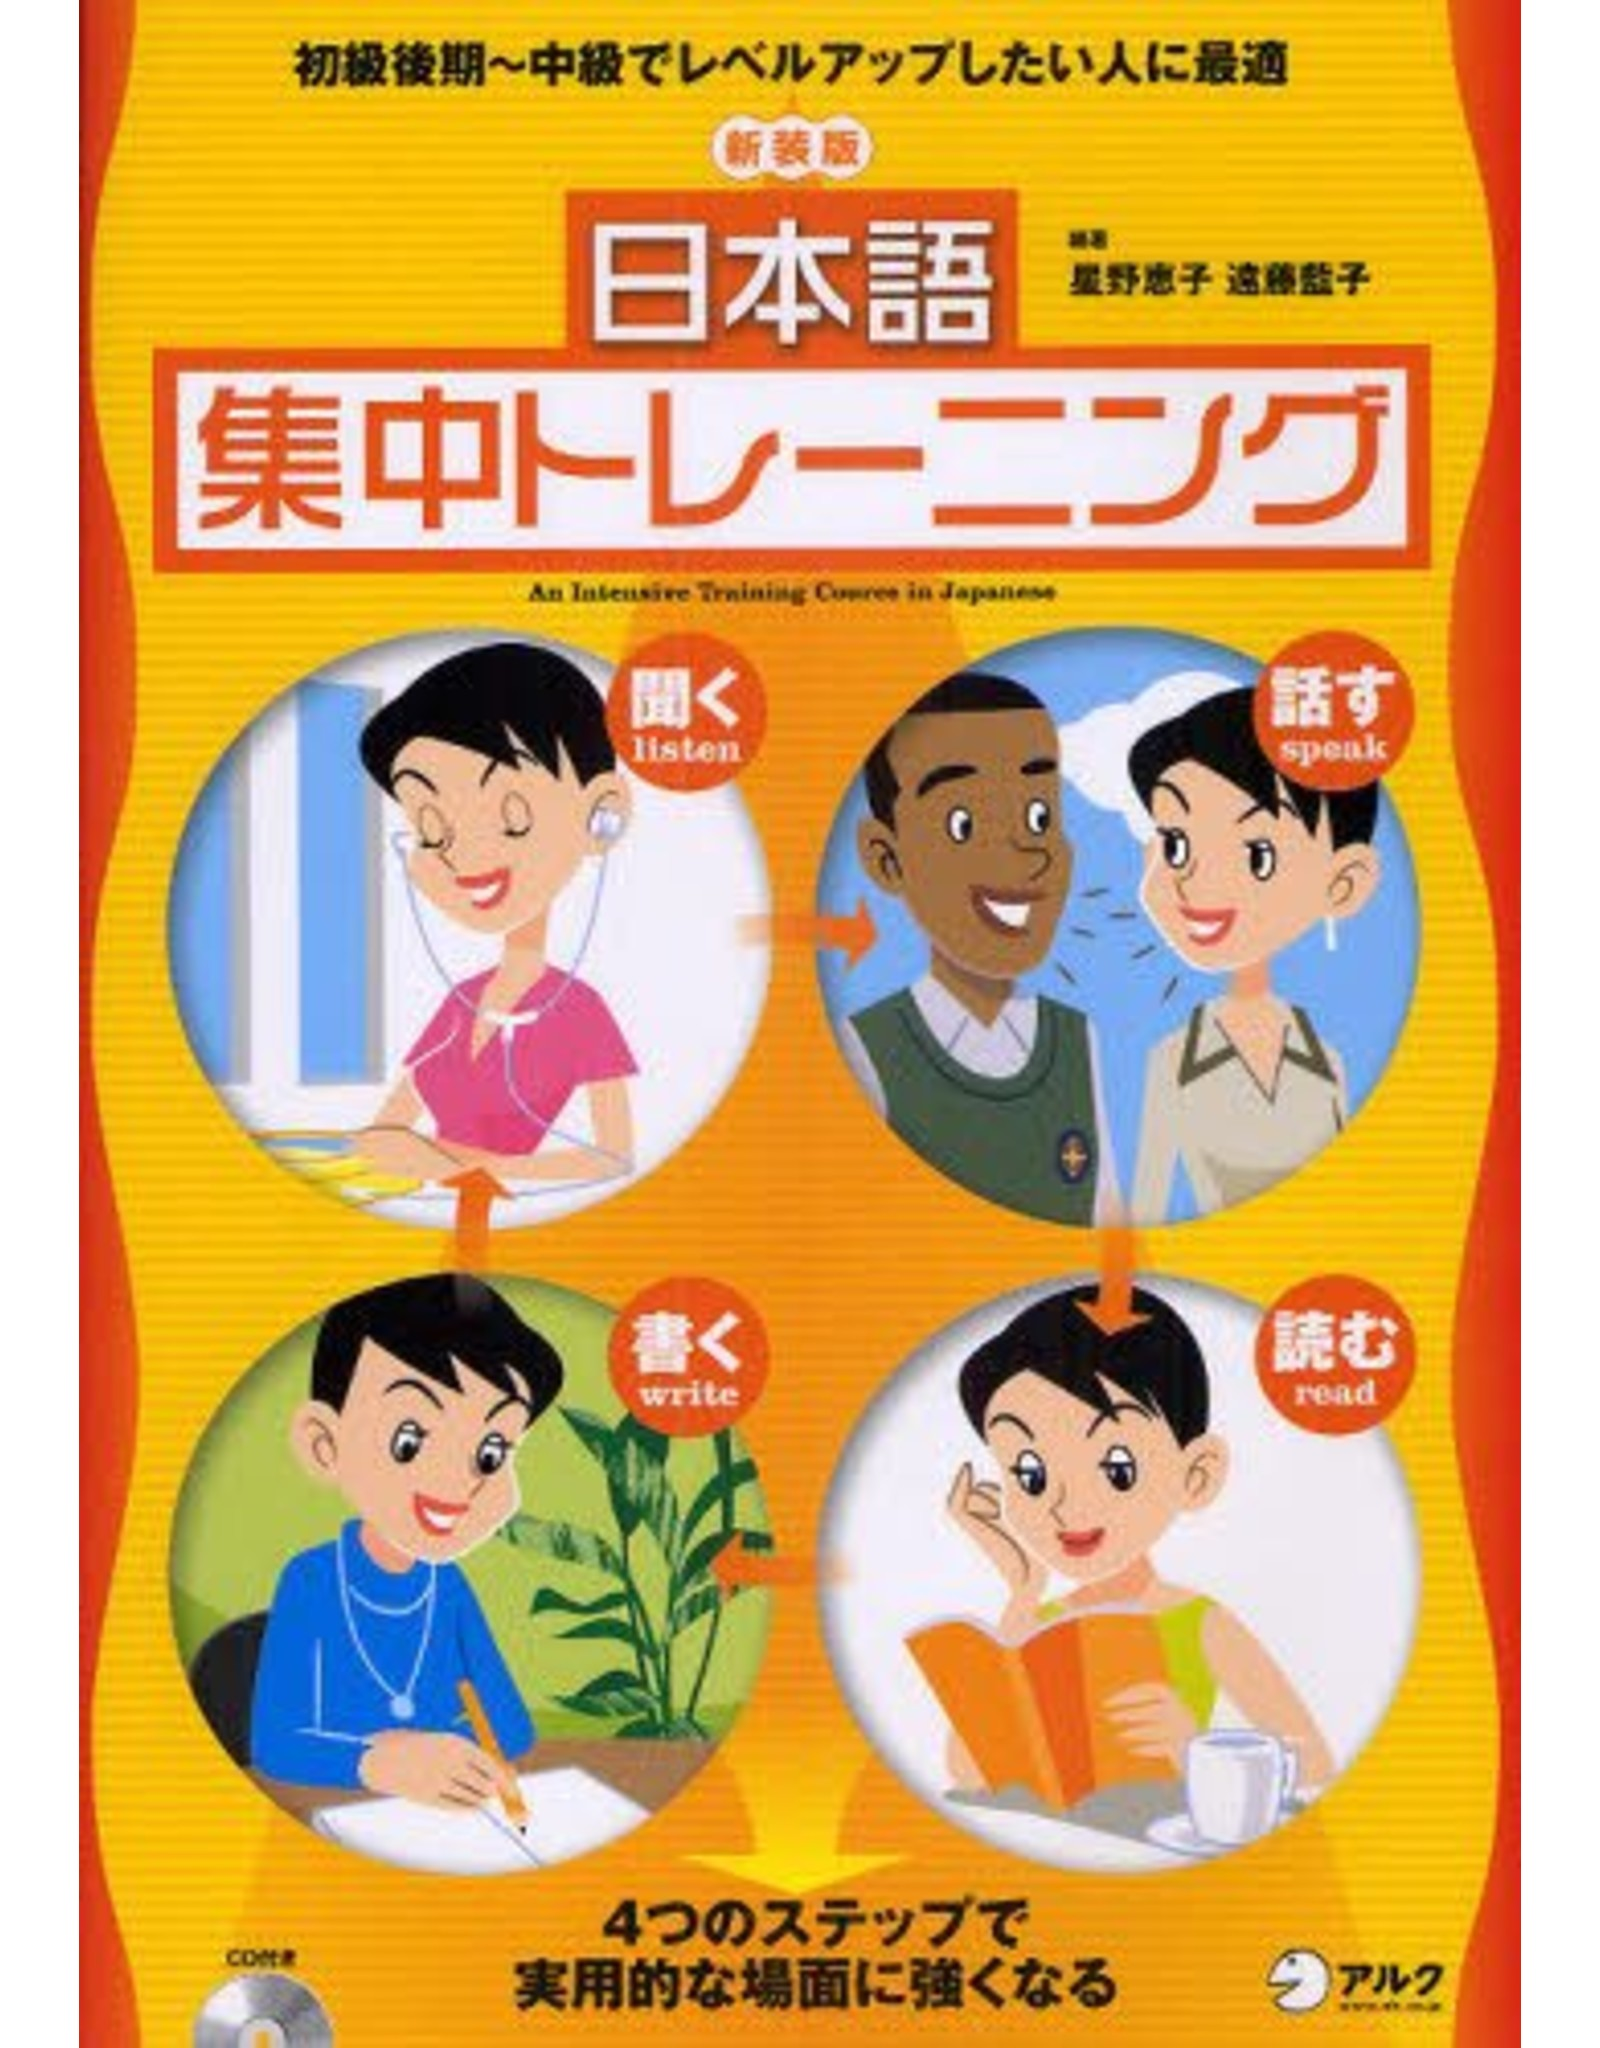 ALC INTENSIVE TRAINING COURSE IN JAPANESE W/CD (REV)